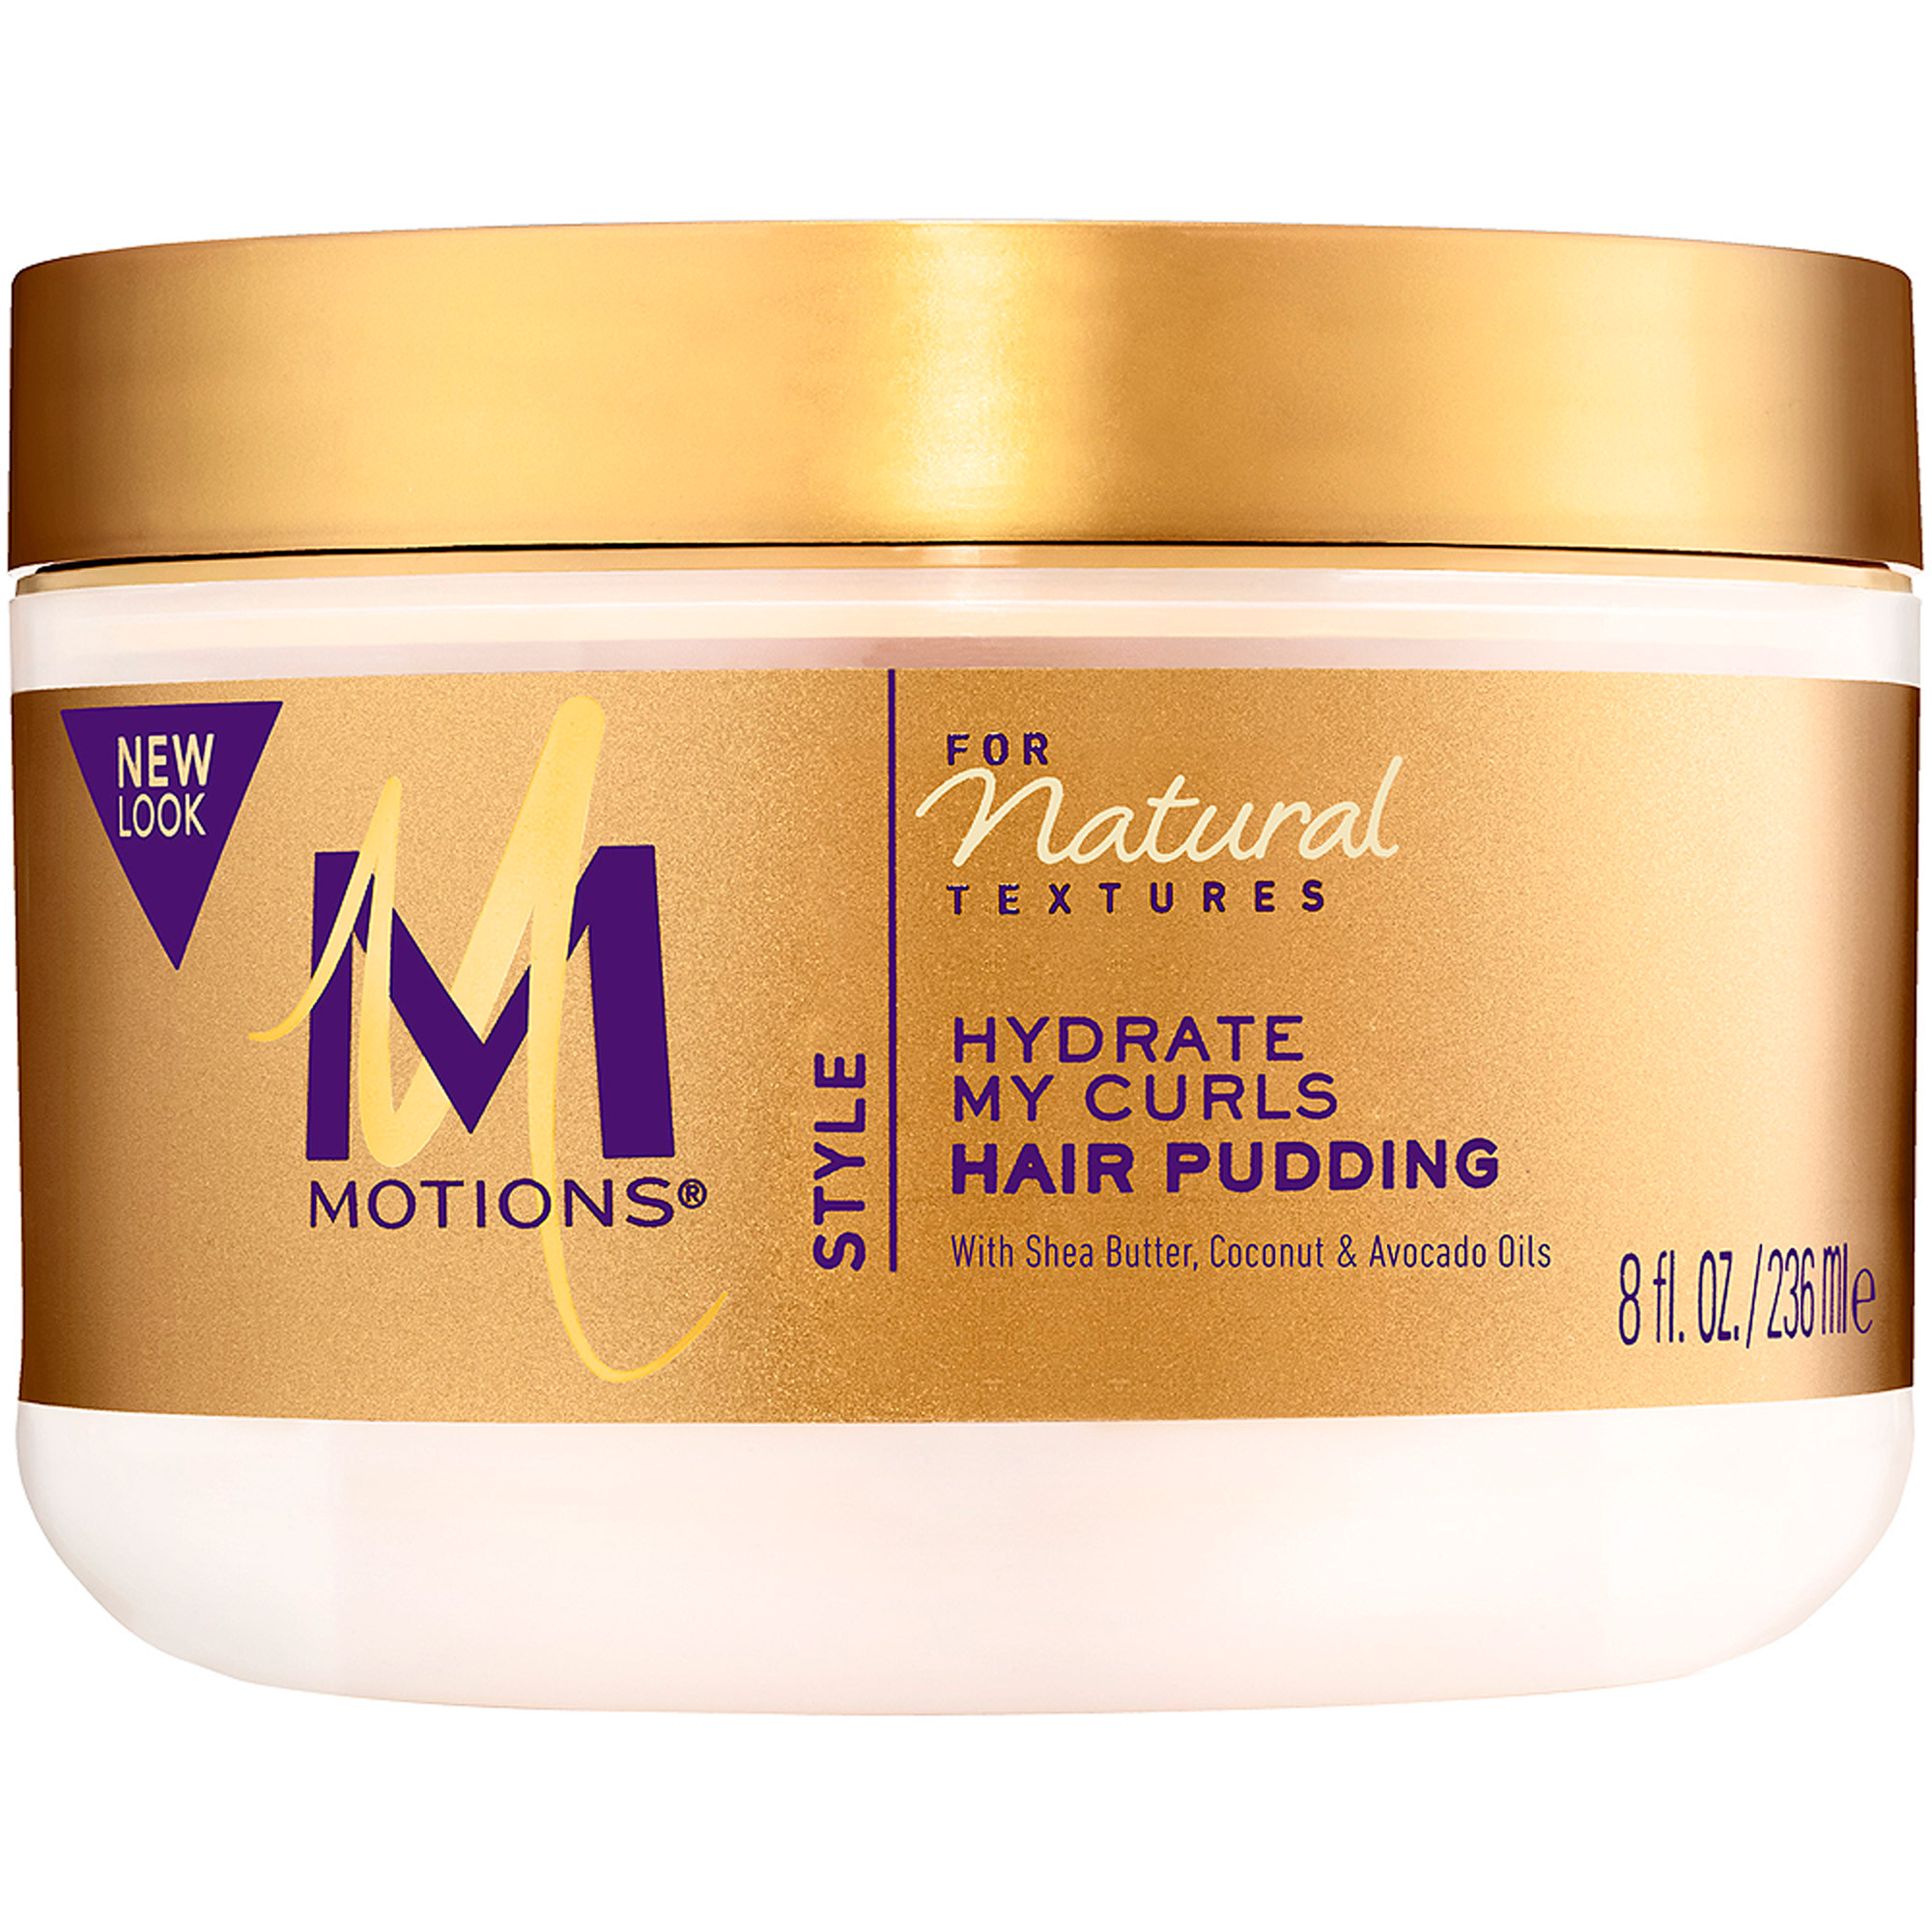 Motions Natural Textures With Shea Butter, Coconut and Avocado Oils Hair Pudding, 8 fl oz